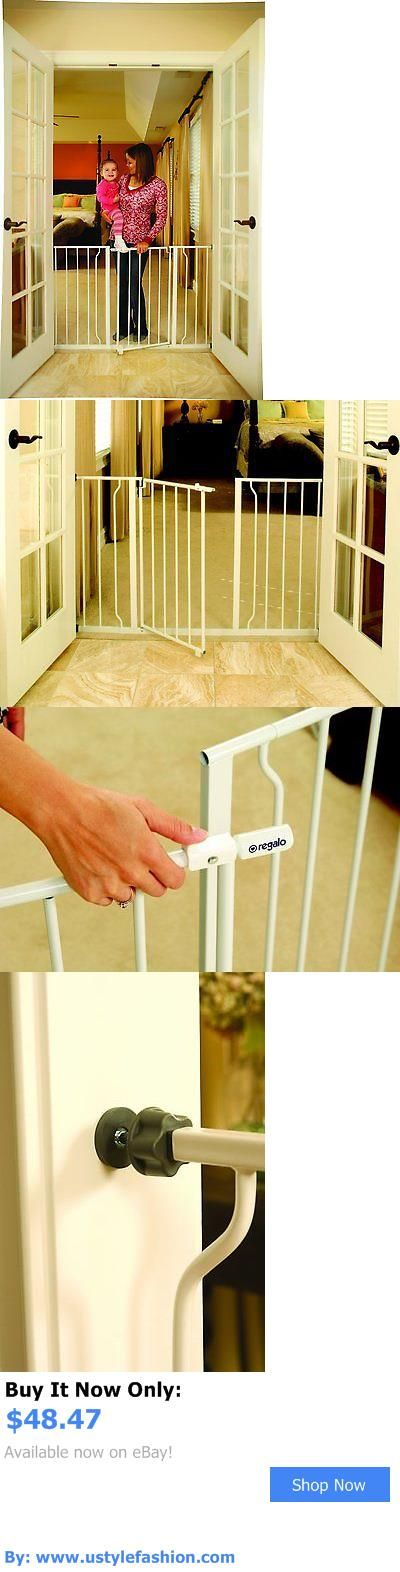 Baby Safety Gates: Baby Safety Gate Toddler Pet Gate Walk Thru Easy Open Extra Wide BUY IT NOW ONLY: $48.47 #ustylefashionBabySafetyGates OR #ustylefashion